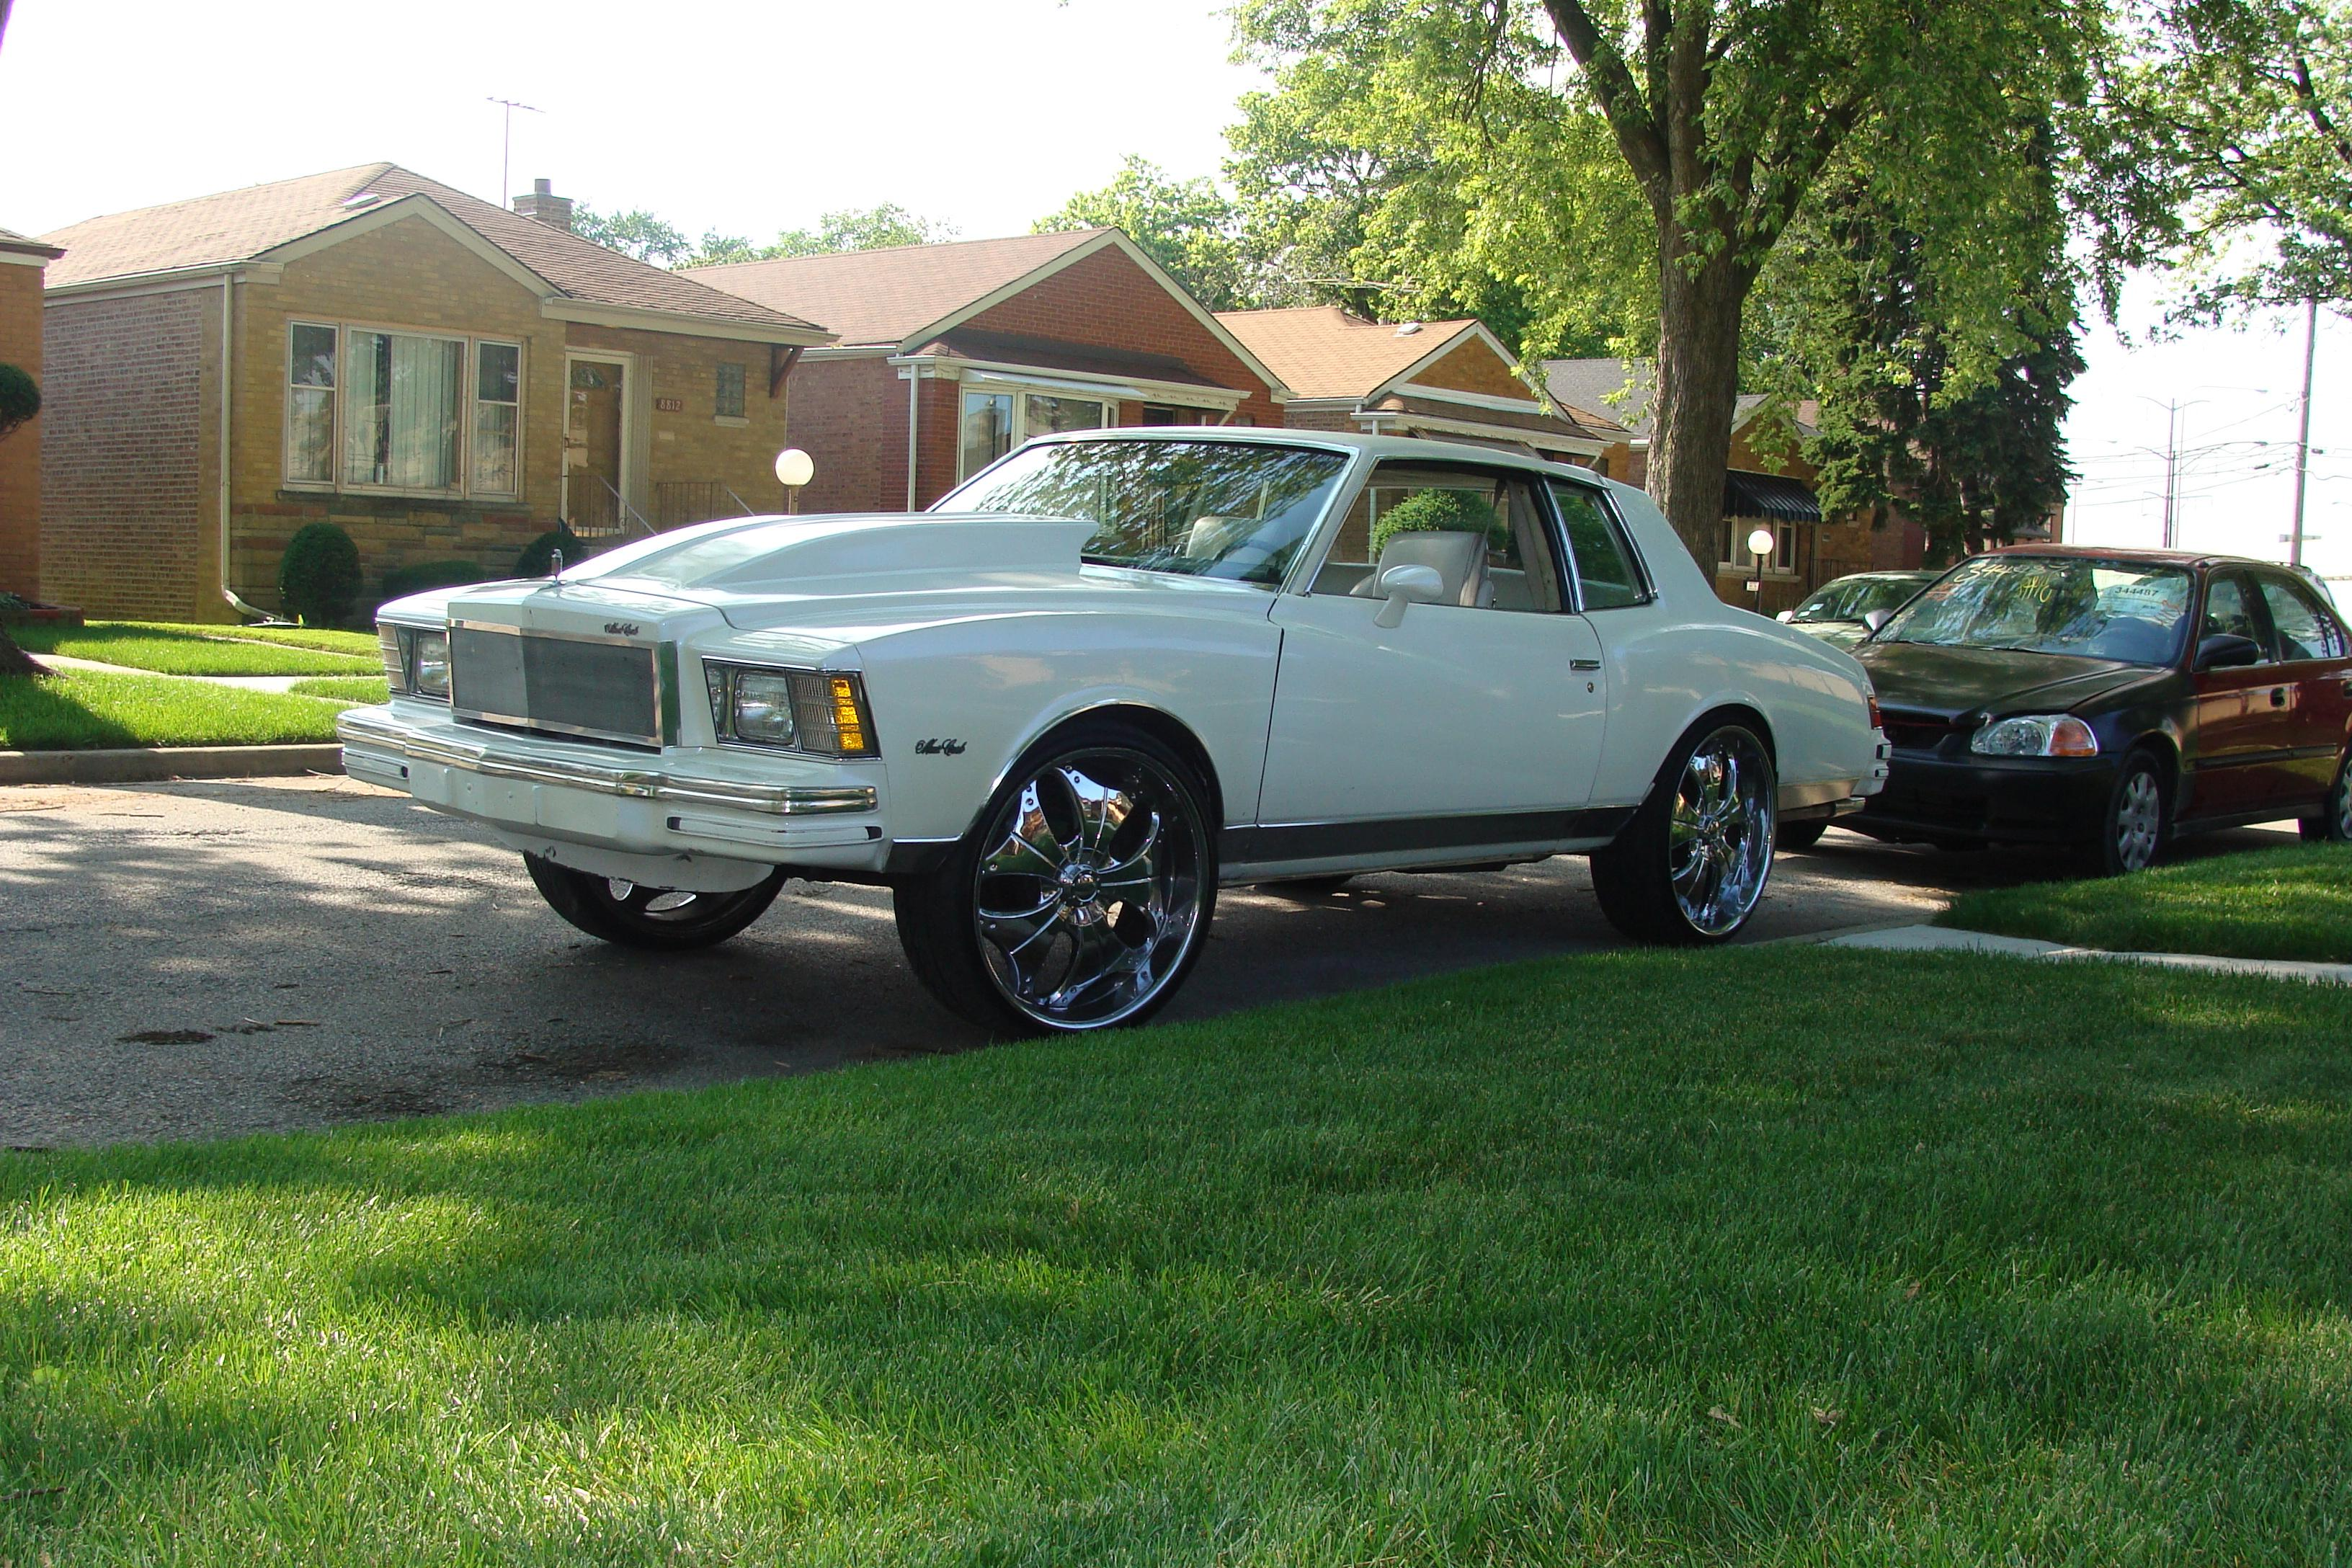 073eastside 1979 Chevrolet Monte Carlo Specs, Photos, Modification Info at CarDomain